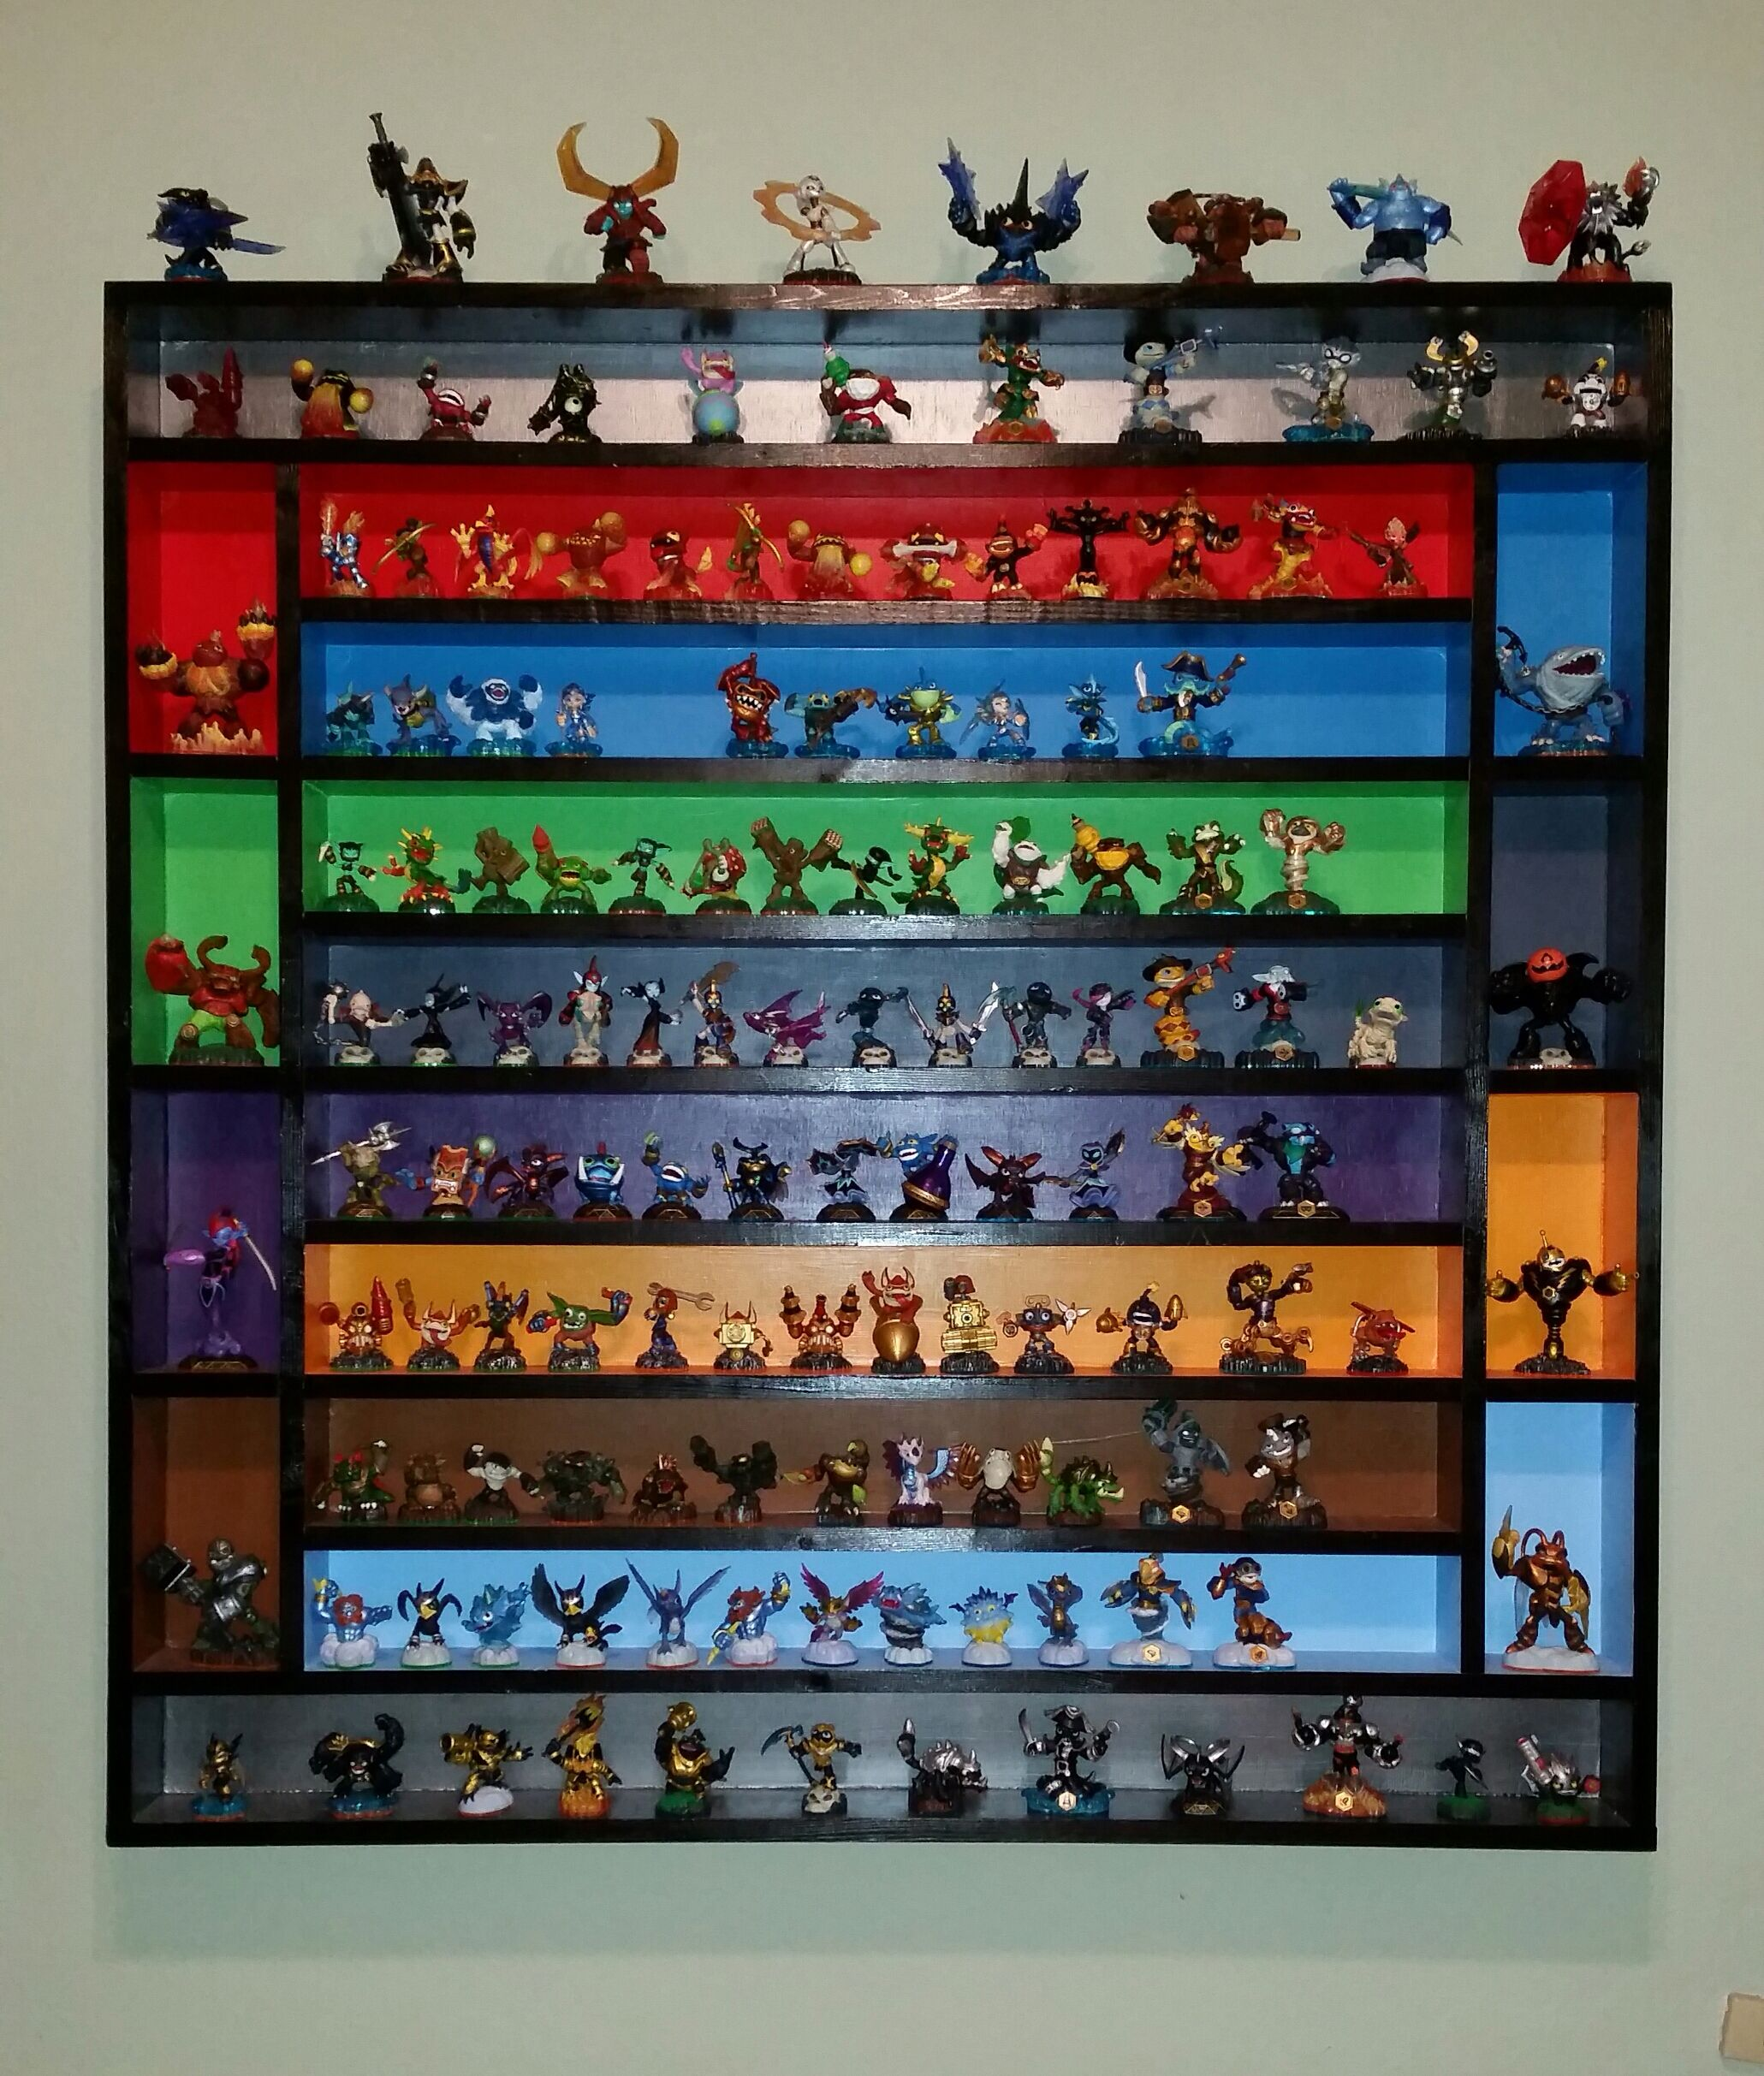 Updated: Coolest Skylanders Shelf... Ever! Built one year ago for the kids and we're running out of room. Yikes!